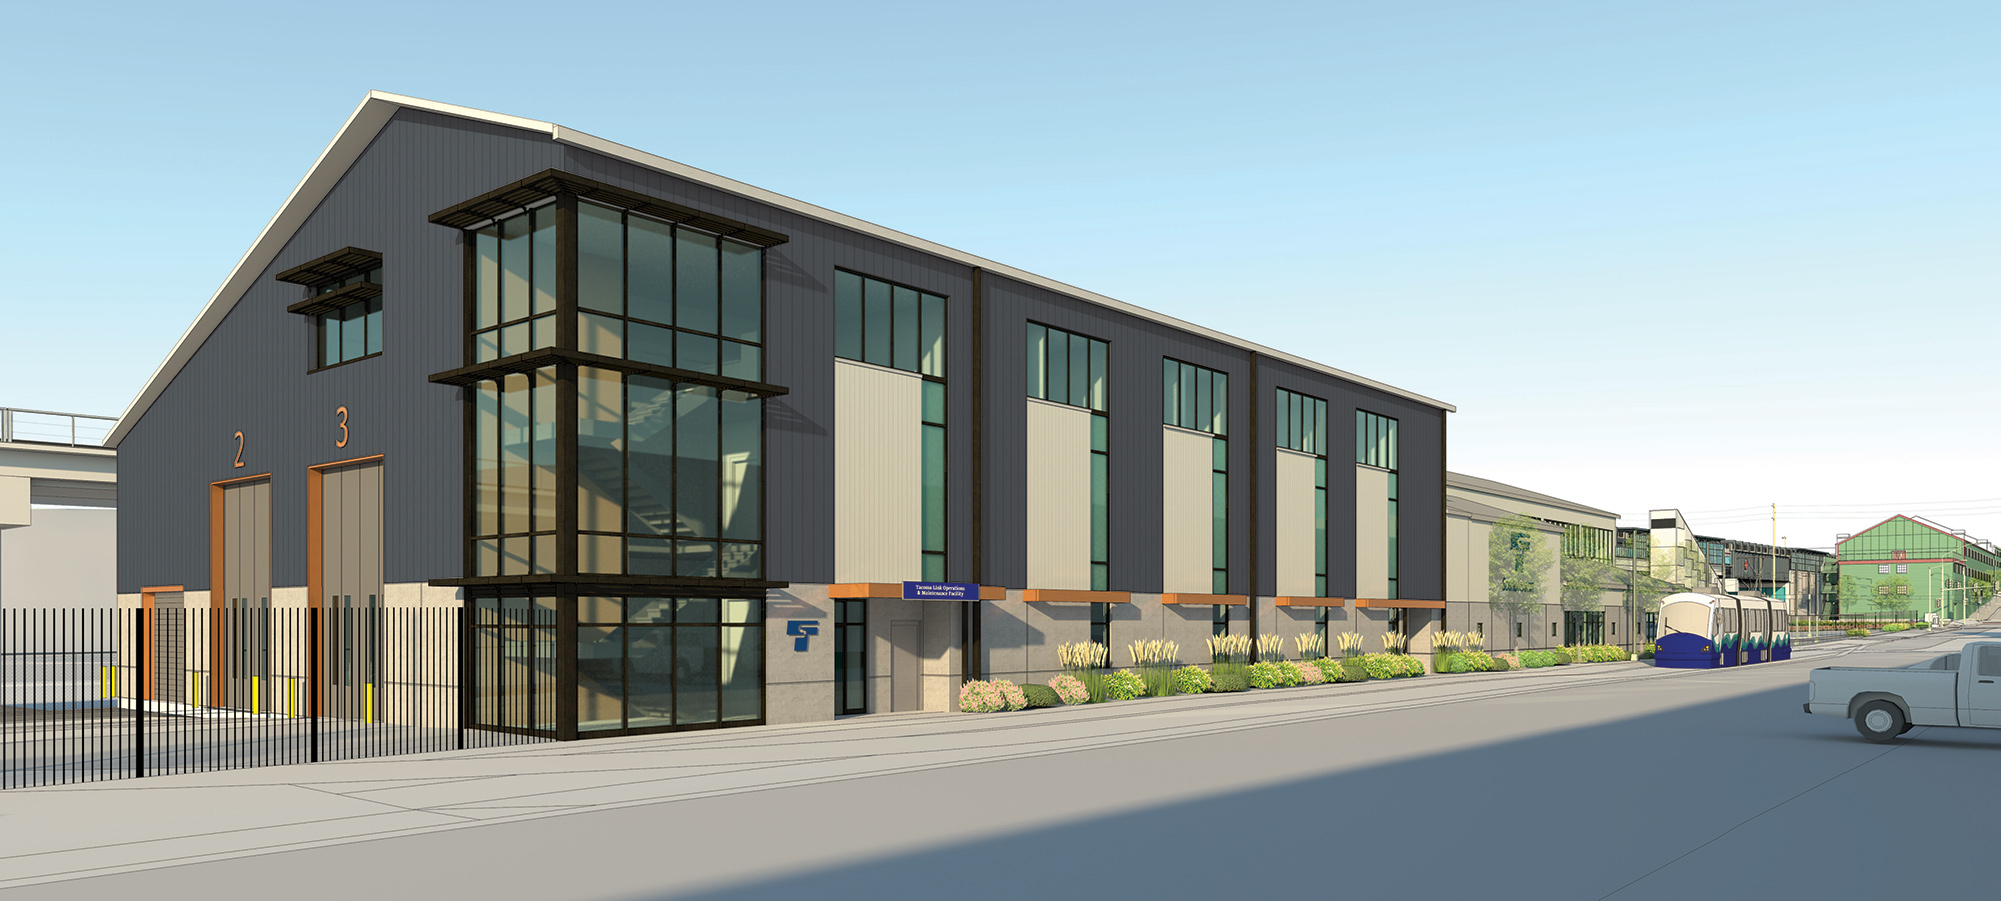 Artist render of future Operations and Maintenance Facility in Tacoma.